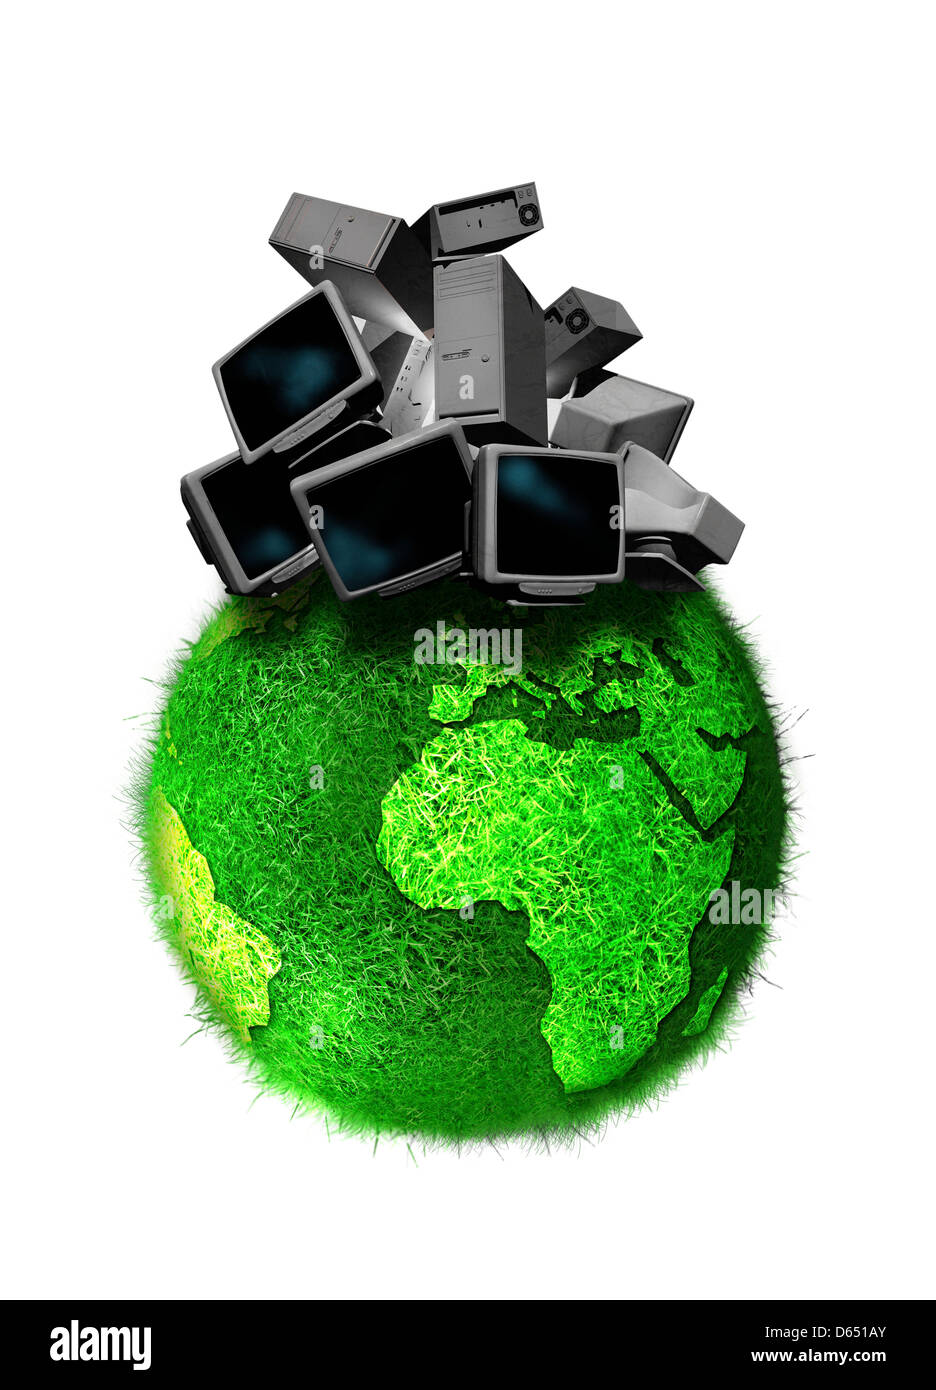 Recycling obsolete technology, artwork - Stock Image